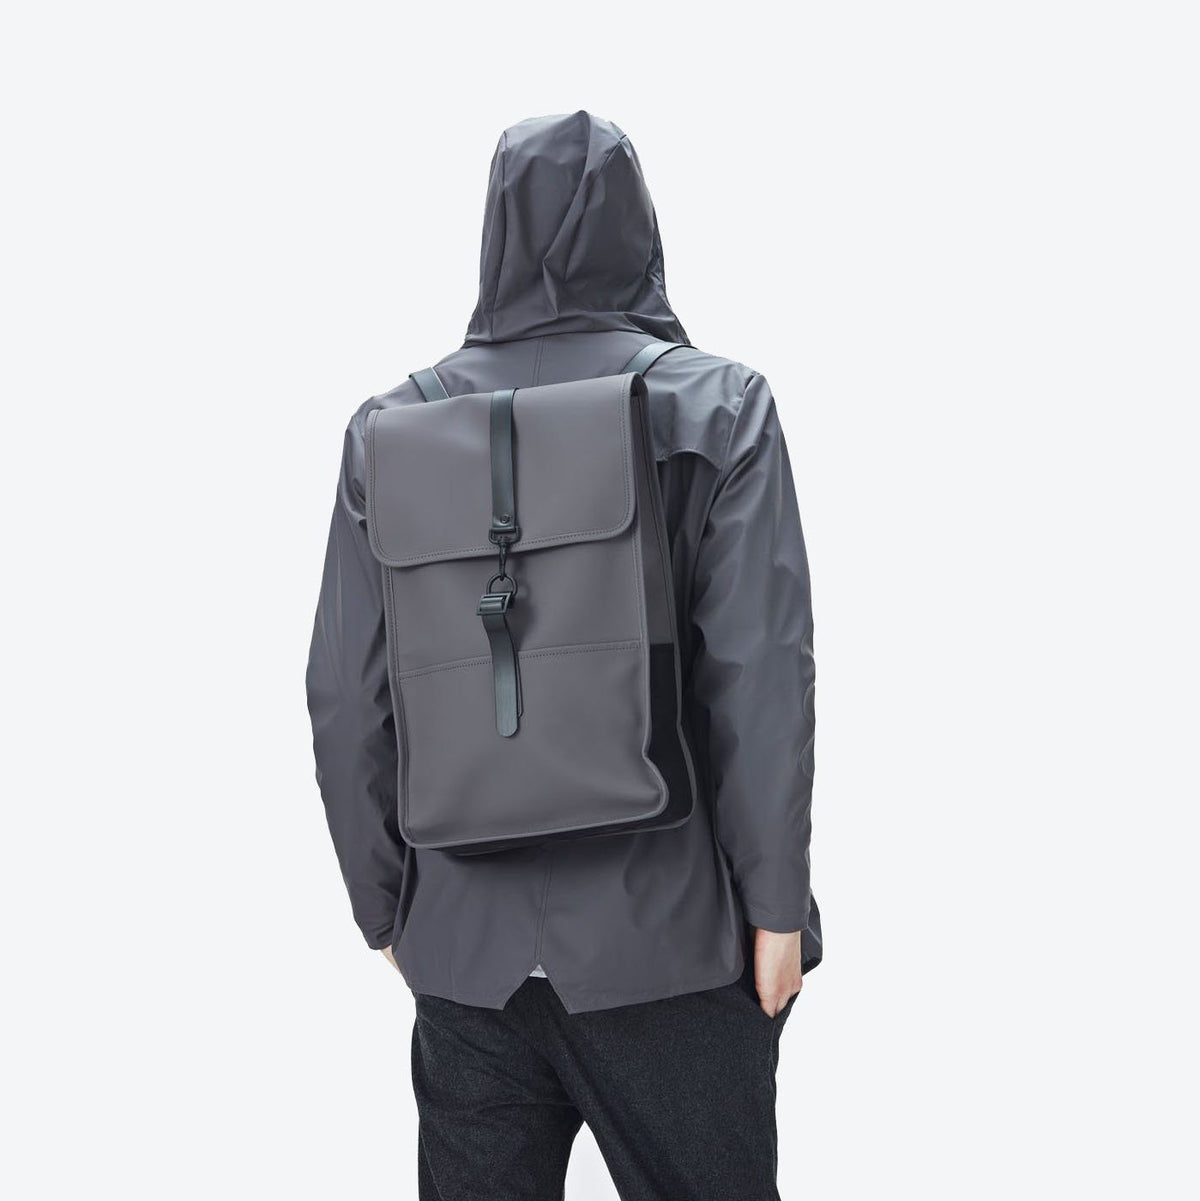 Backpack - Rains Backpack - Smoke